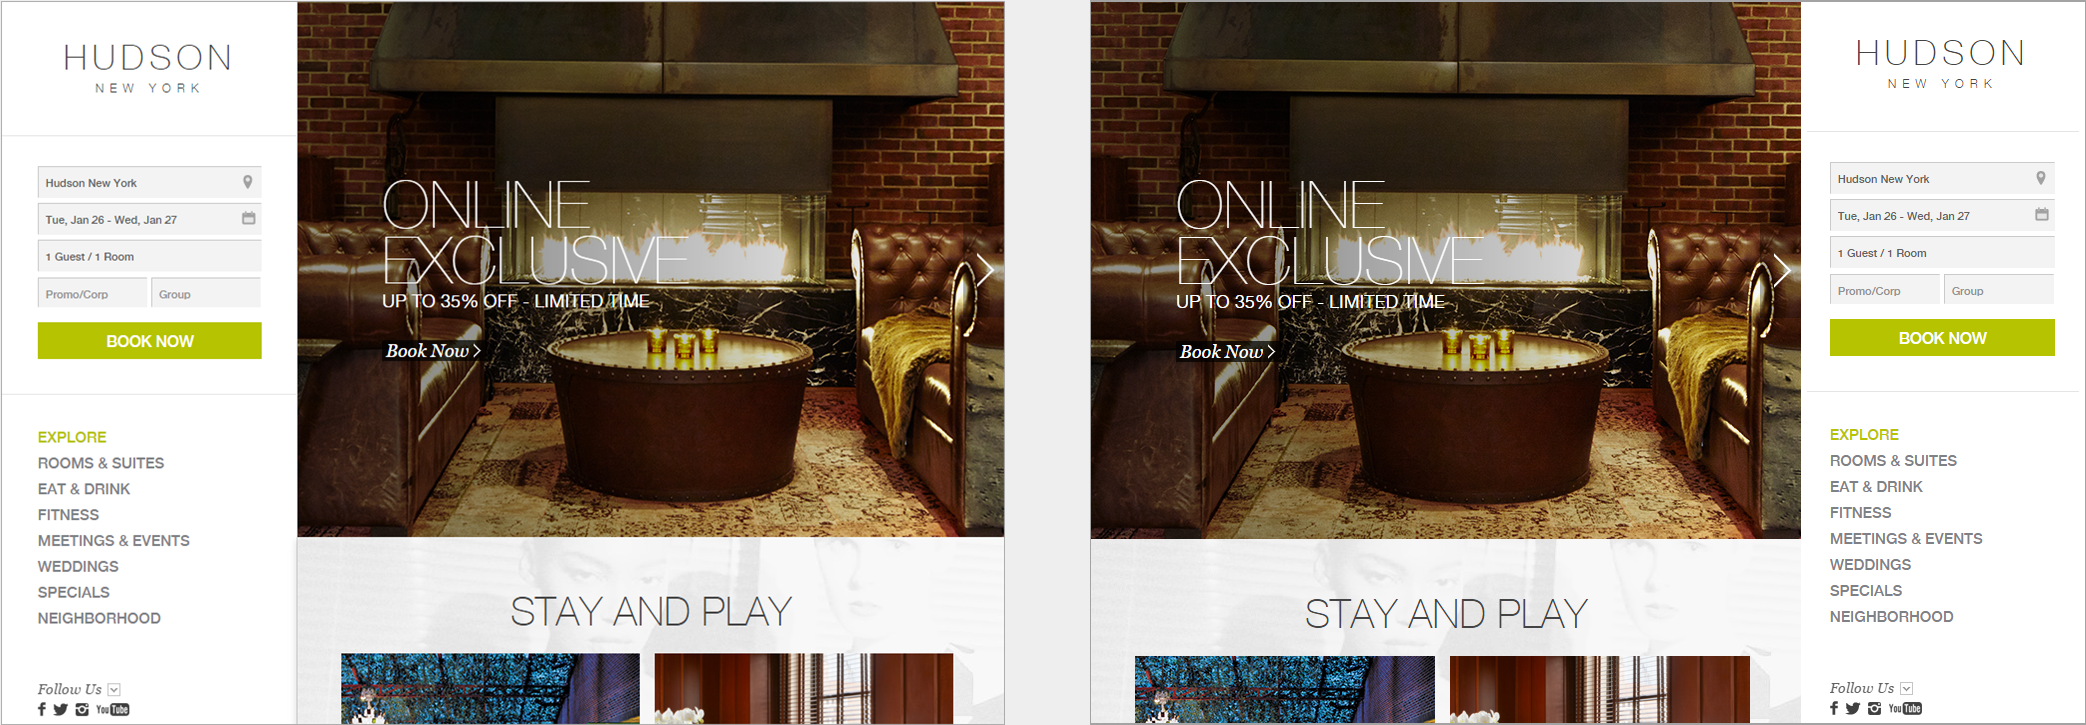 The homepage of the Hudson hotel (left) and a manipulated version of the homepage with the logo on the right side